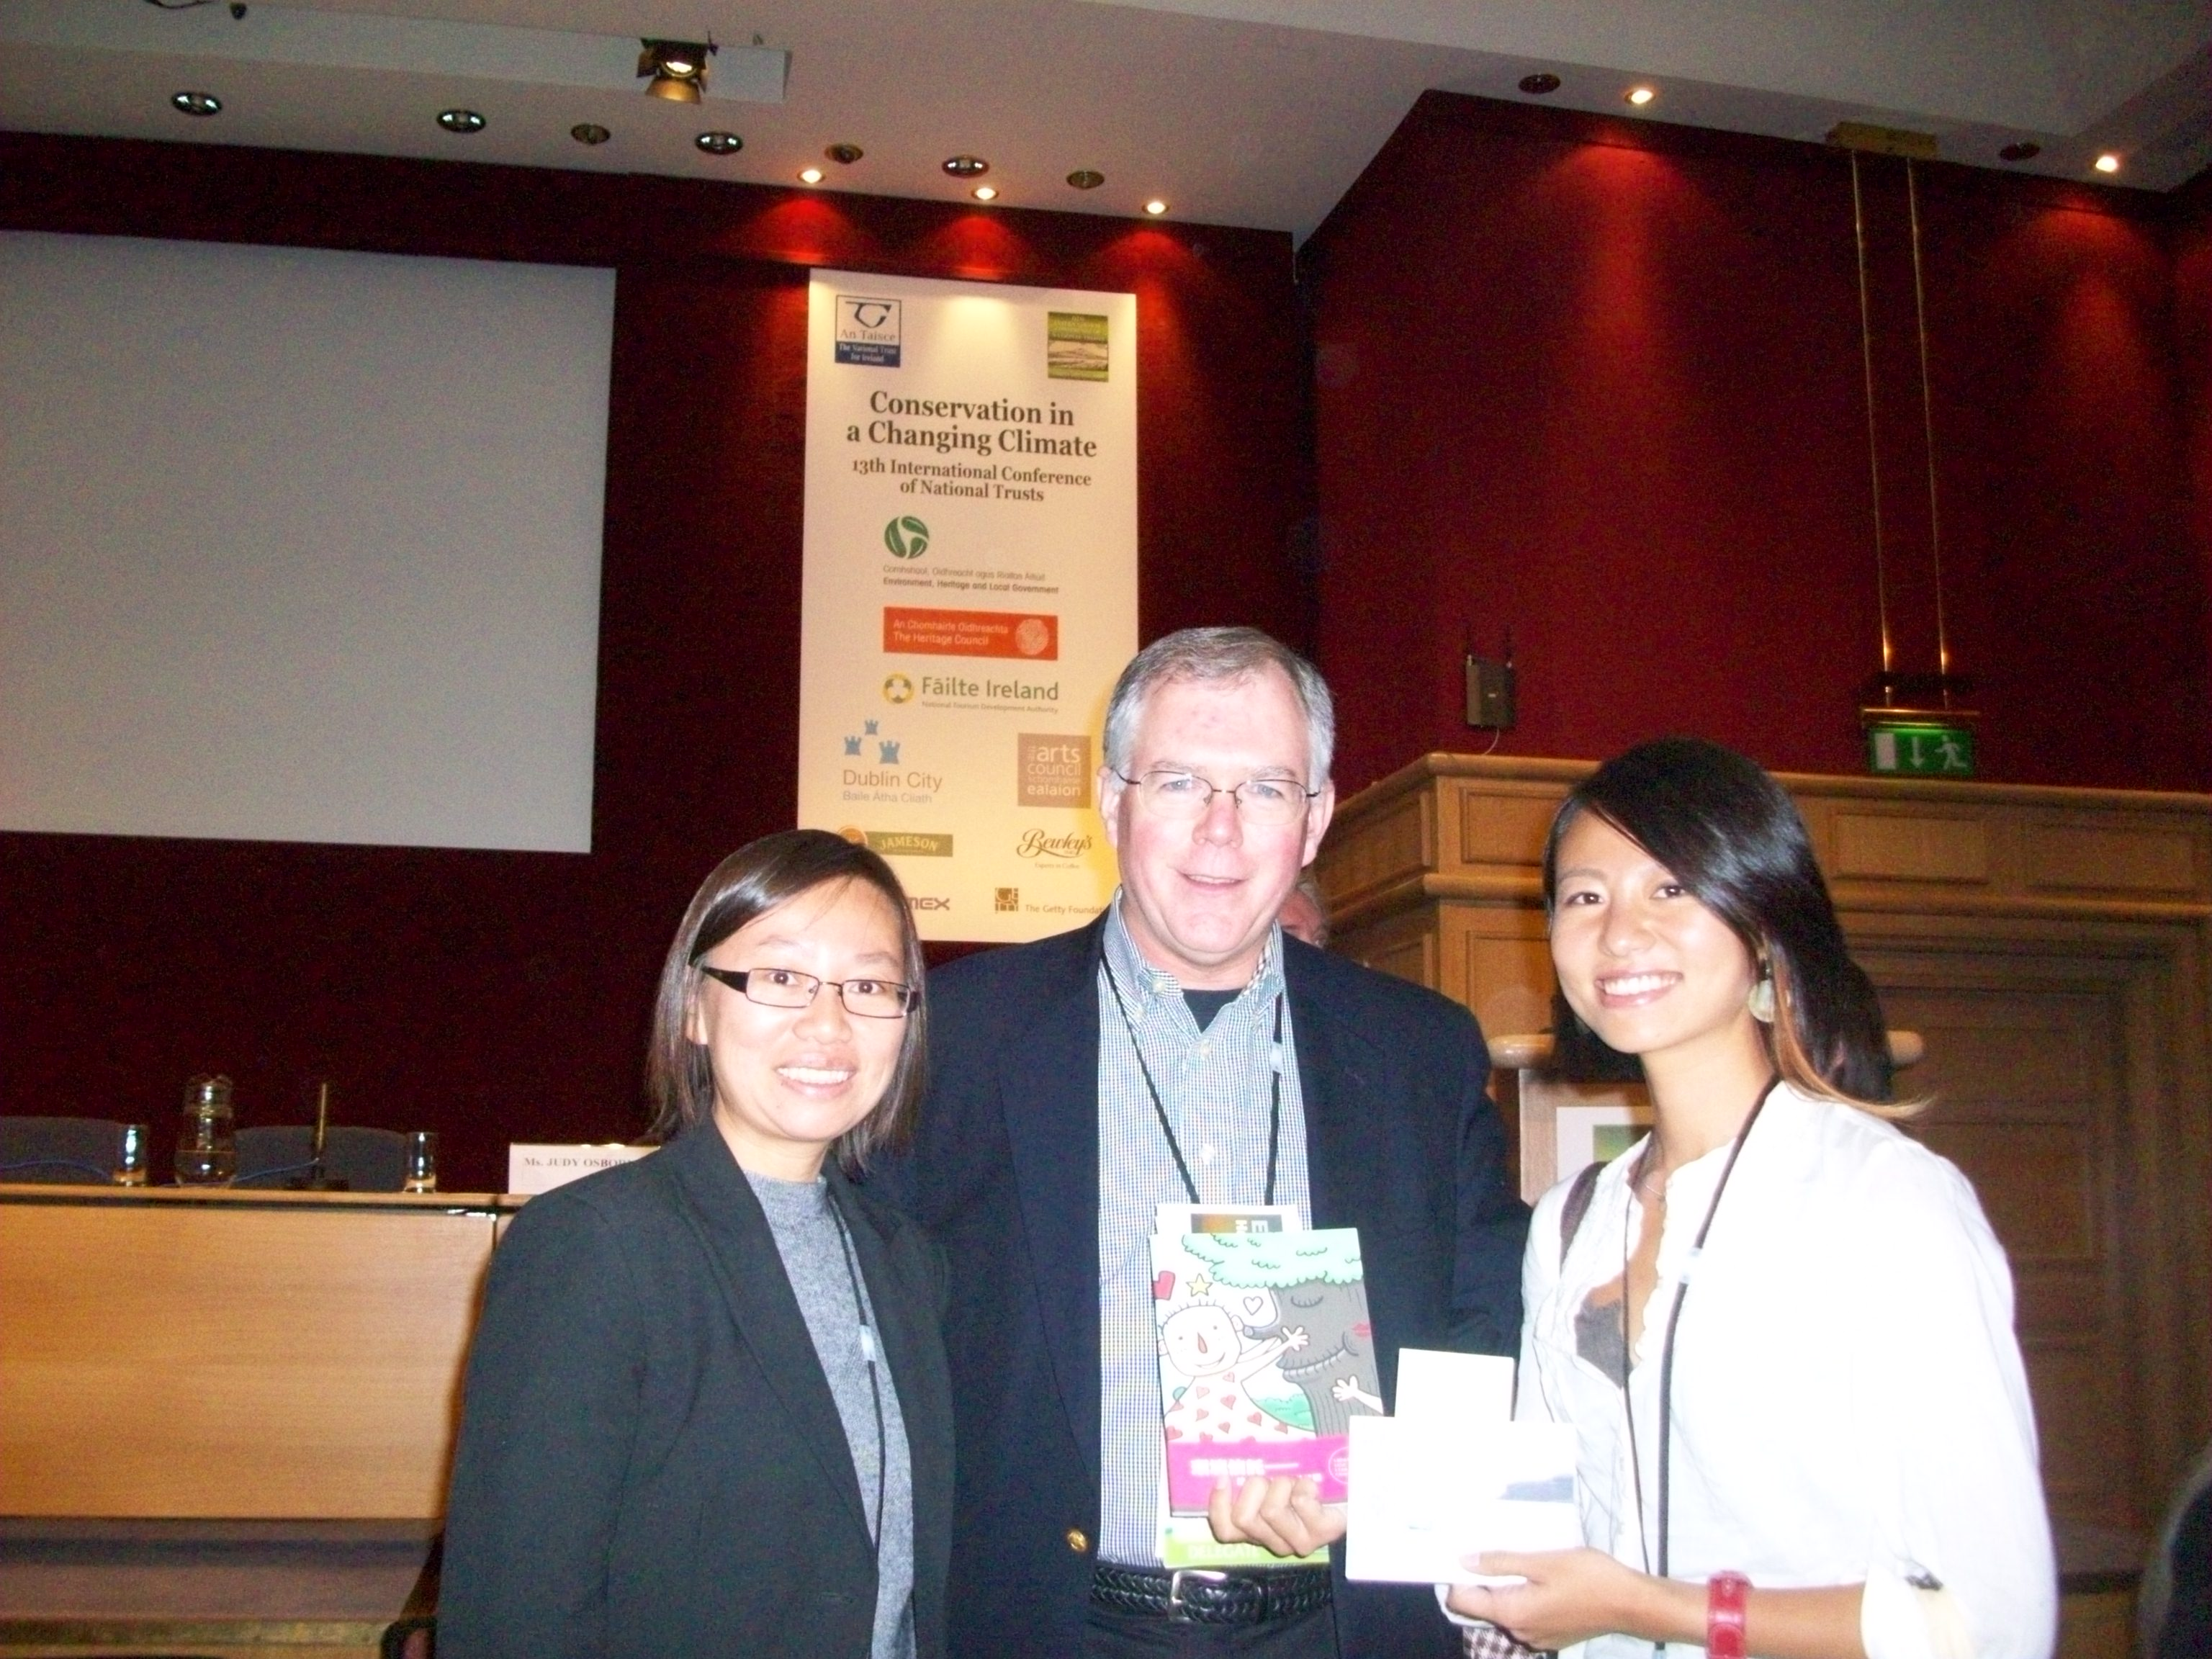 David with colleagues from the National Trust of Taiwan at the International Conference of National Trusts in Dublin, September 2009